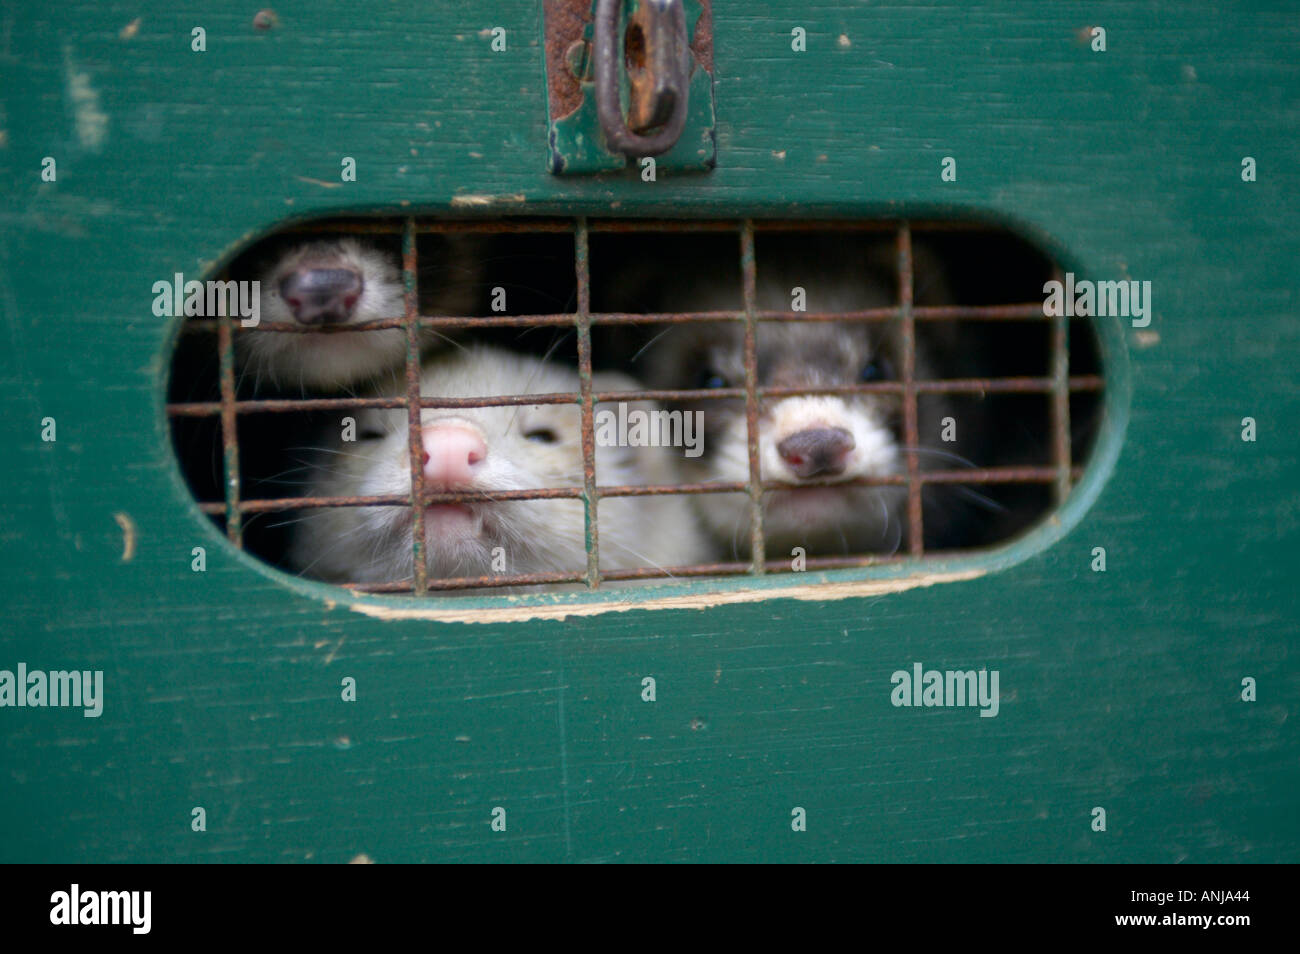 Ferrets being transported in box - Stock Image